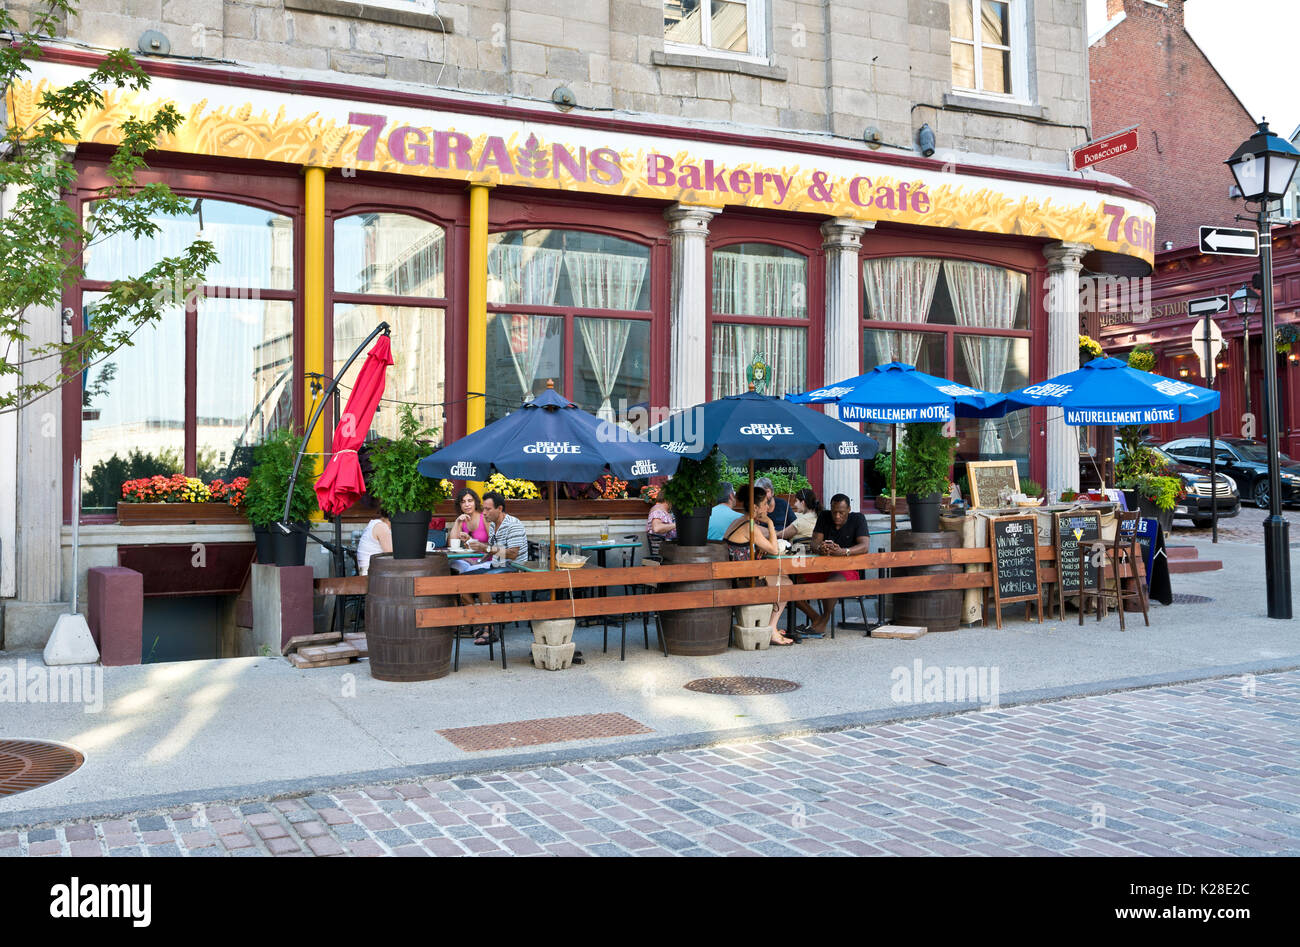 People on the patio at 7 Grains Bakery & Cafe in Old Montreal. - Stock Image